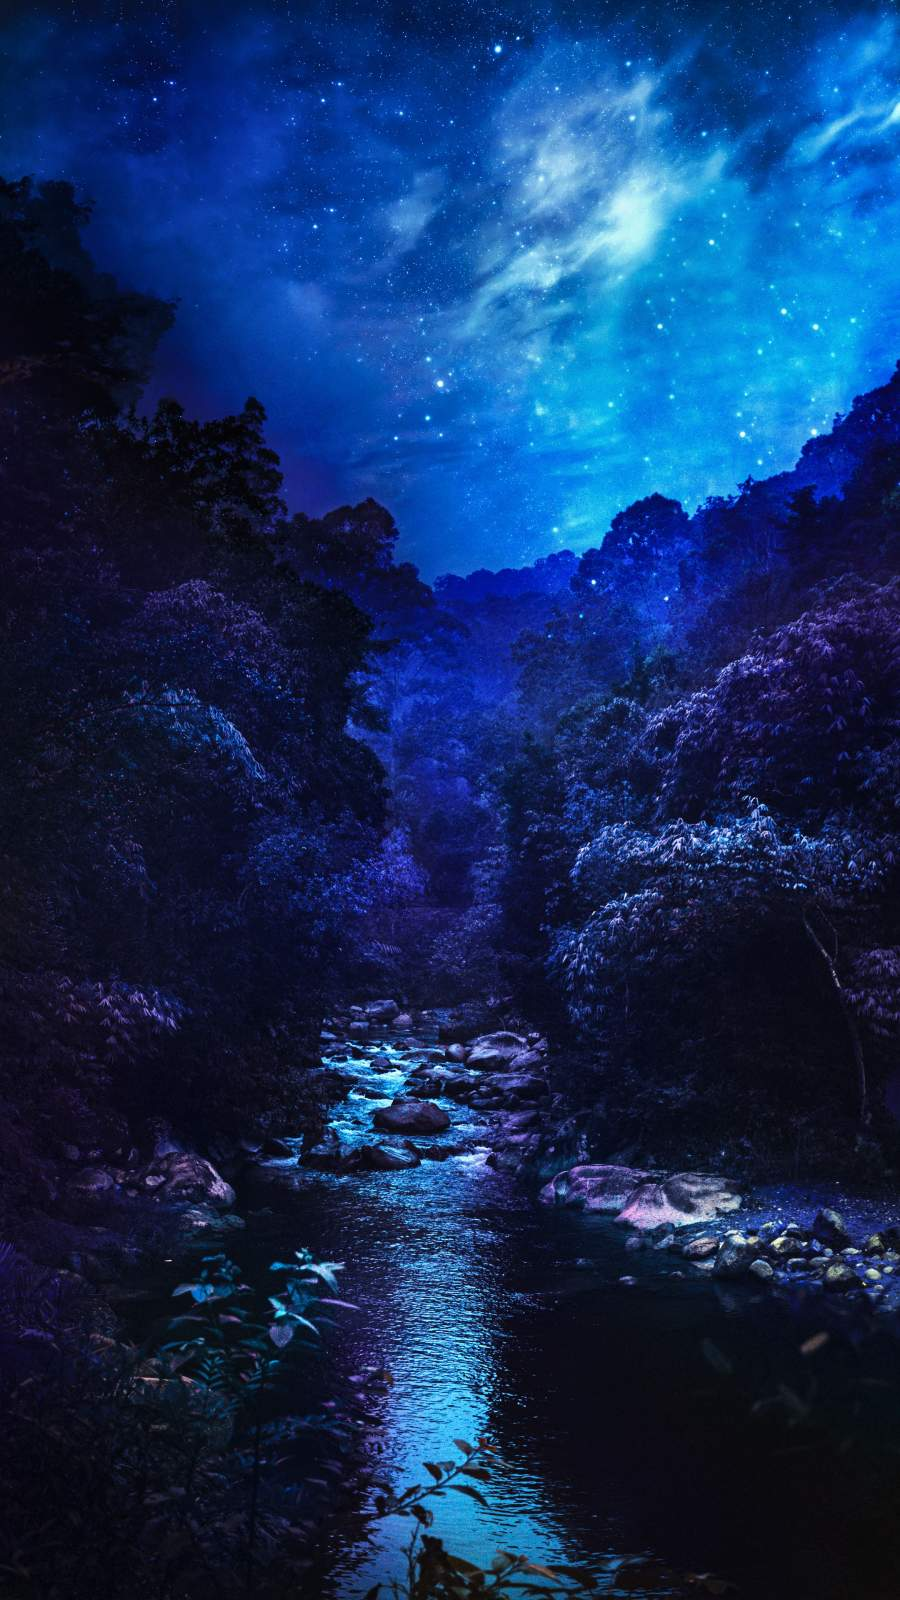 Blue Nature Scenery iPhone Wallpaper